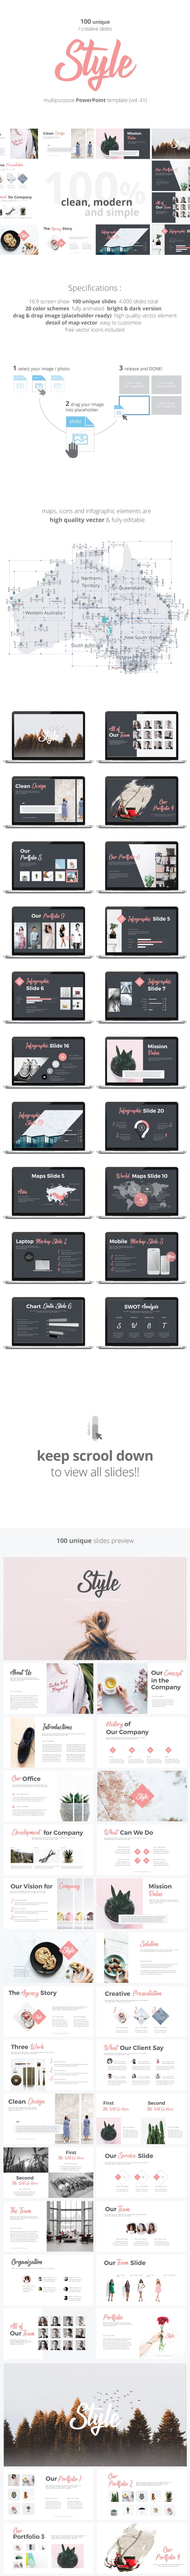 Style - Multipurpose PowerPoint Template (V.41) - Business PowerPoint Templates